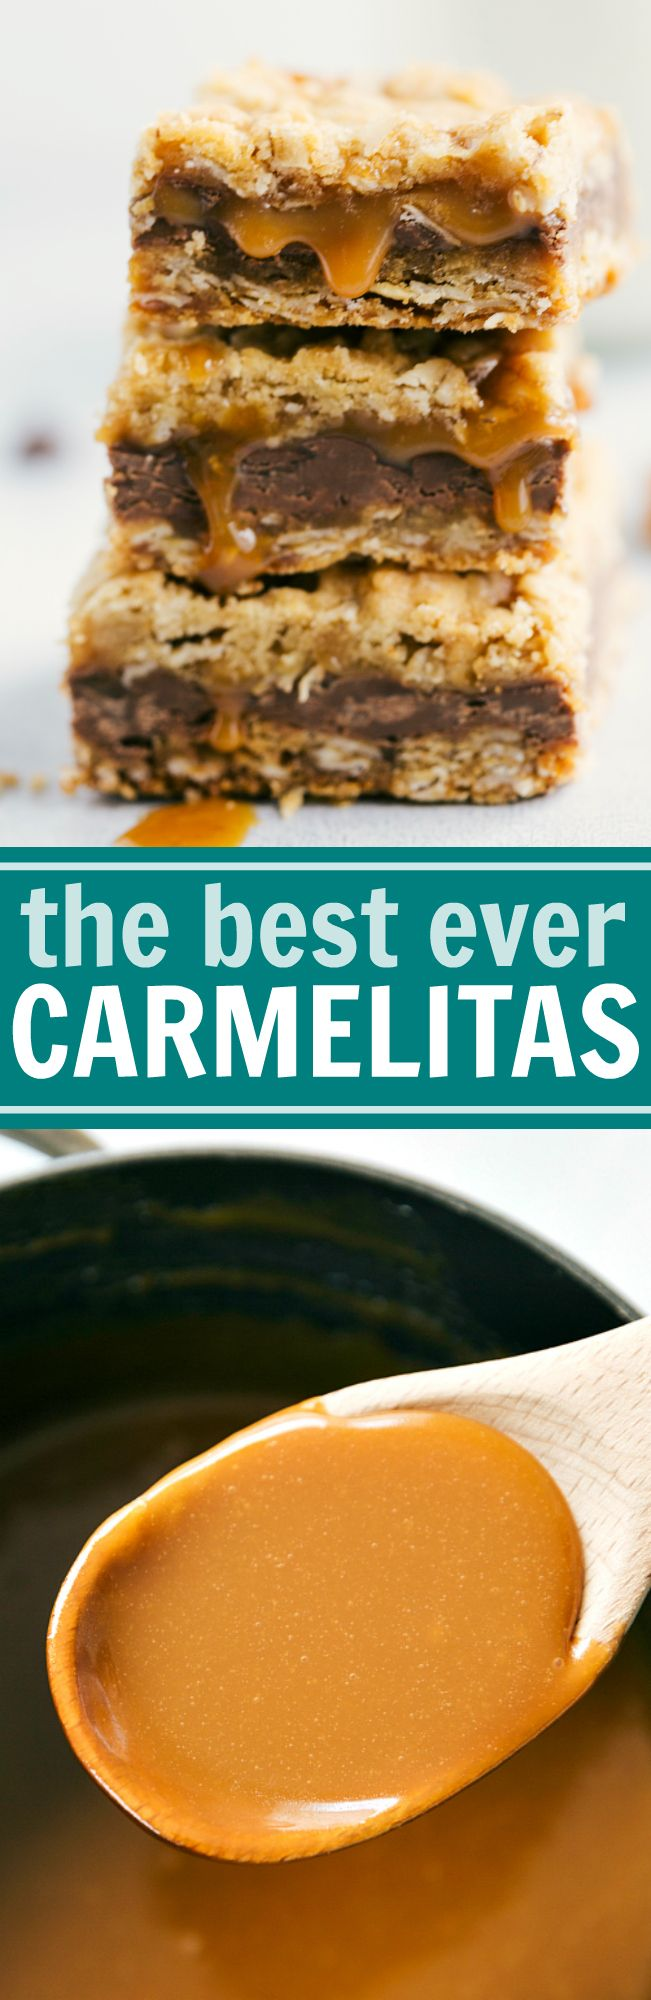 The BEST EVER Carmelitas -- oatmeal bars with a thick layer of milk chocolate and creamy caramel. These bars can be prepared in 20 minutes or less! via chelseasmessyapron.com